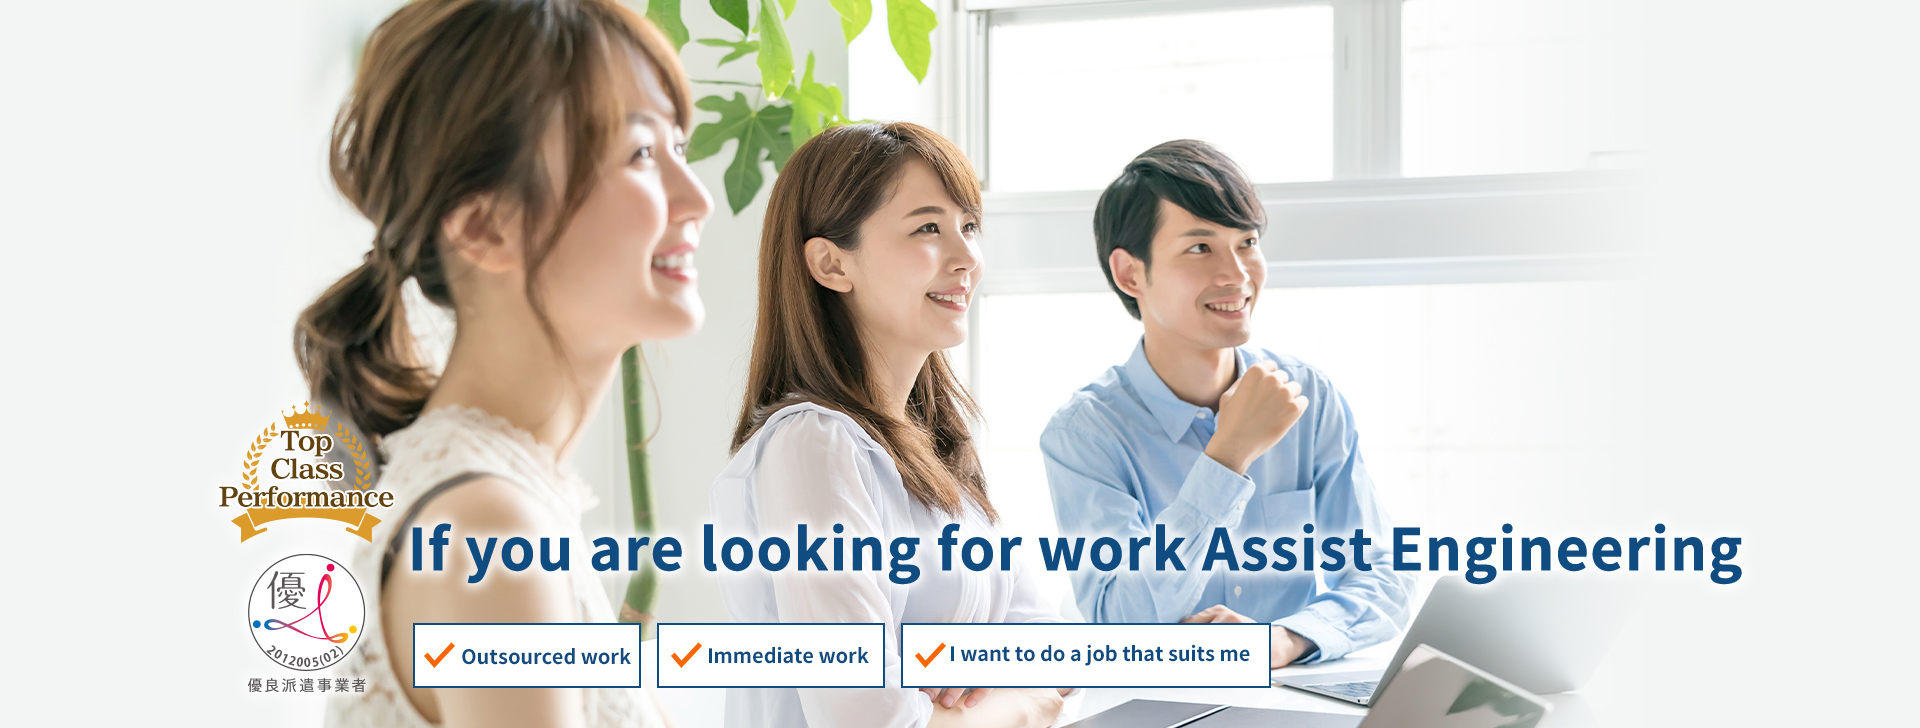 If you are looking for work Assit Engineering